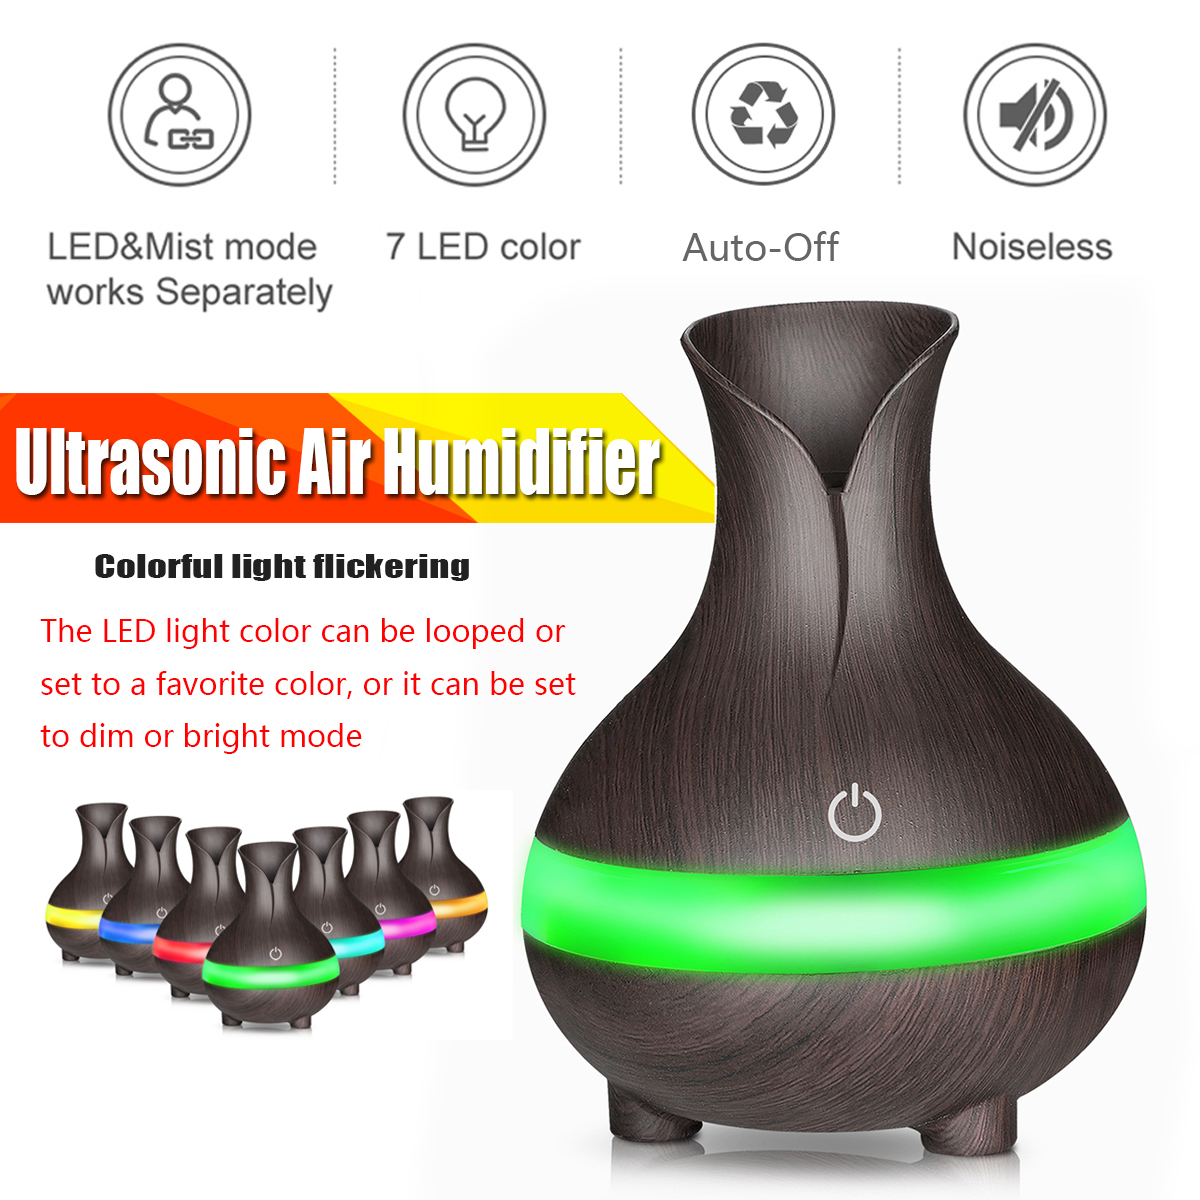 Wood Grain Humidifier Ultrasonic Aroma Essential Oil Air Diffuser USB Cool Mist Humidifier